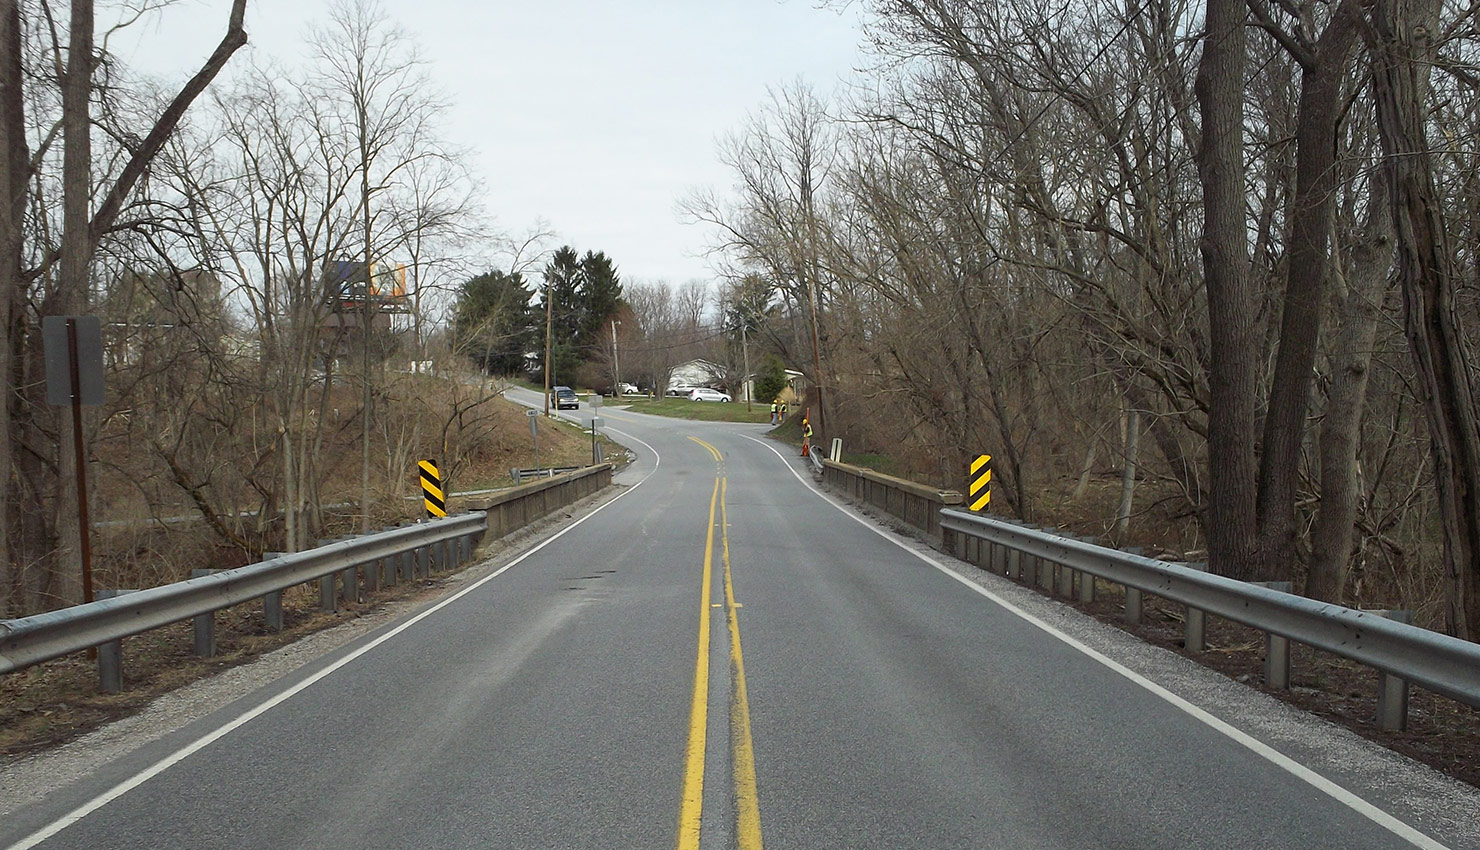 Construction Postponed On Bull Road Bridge Over Fox Run